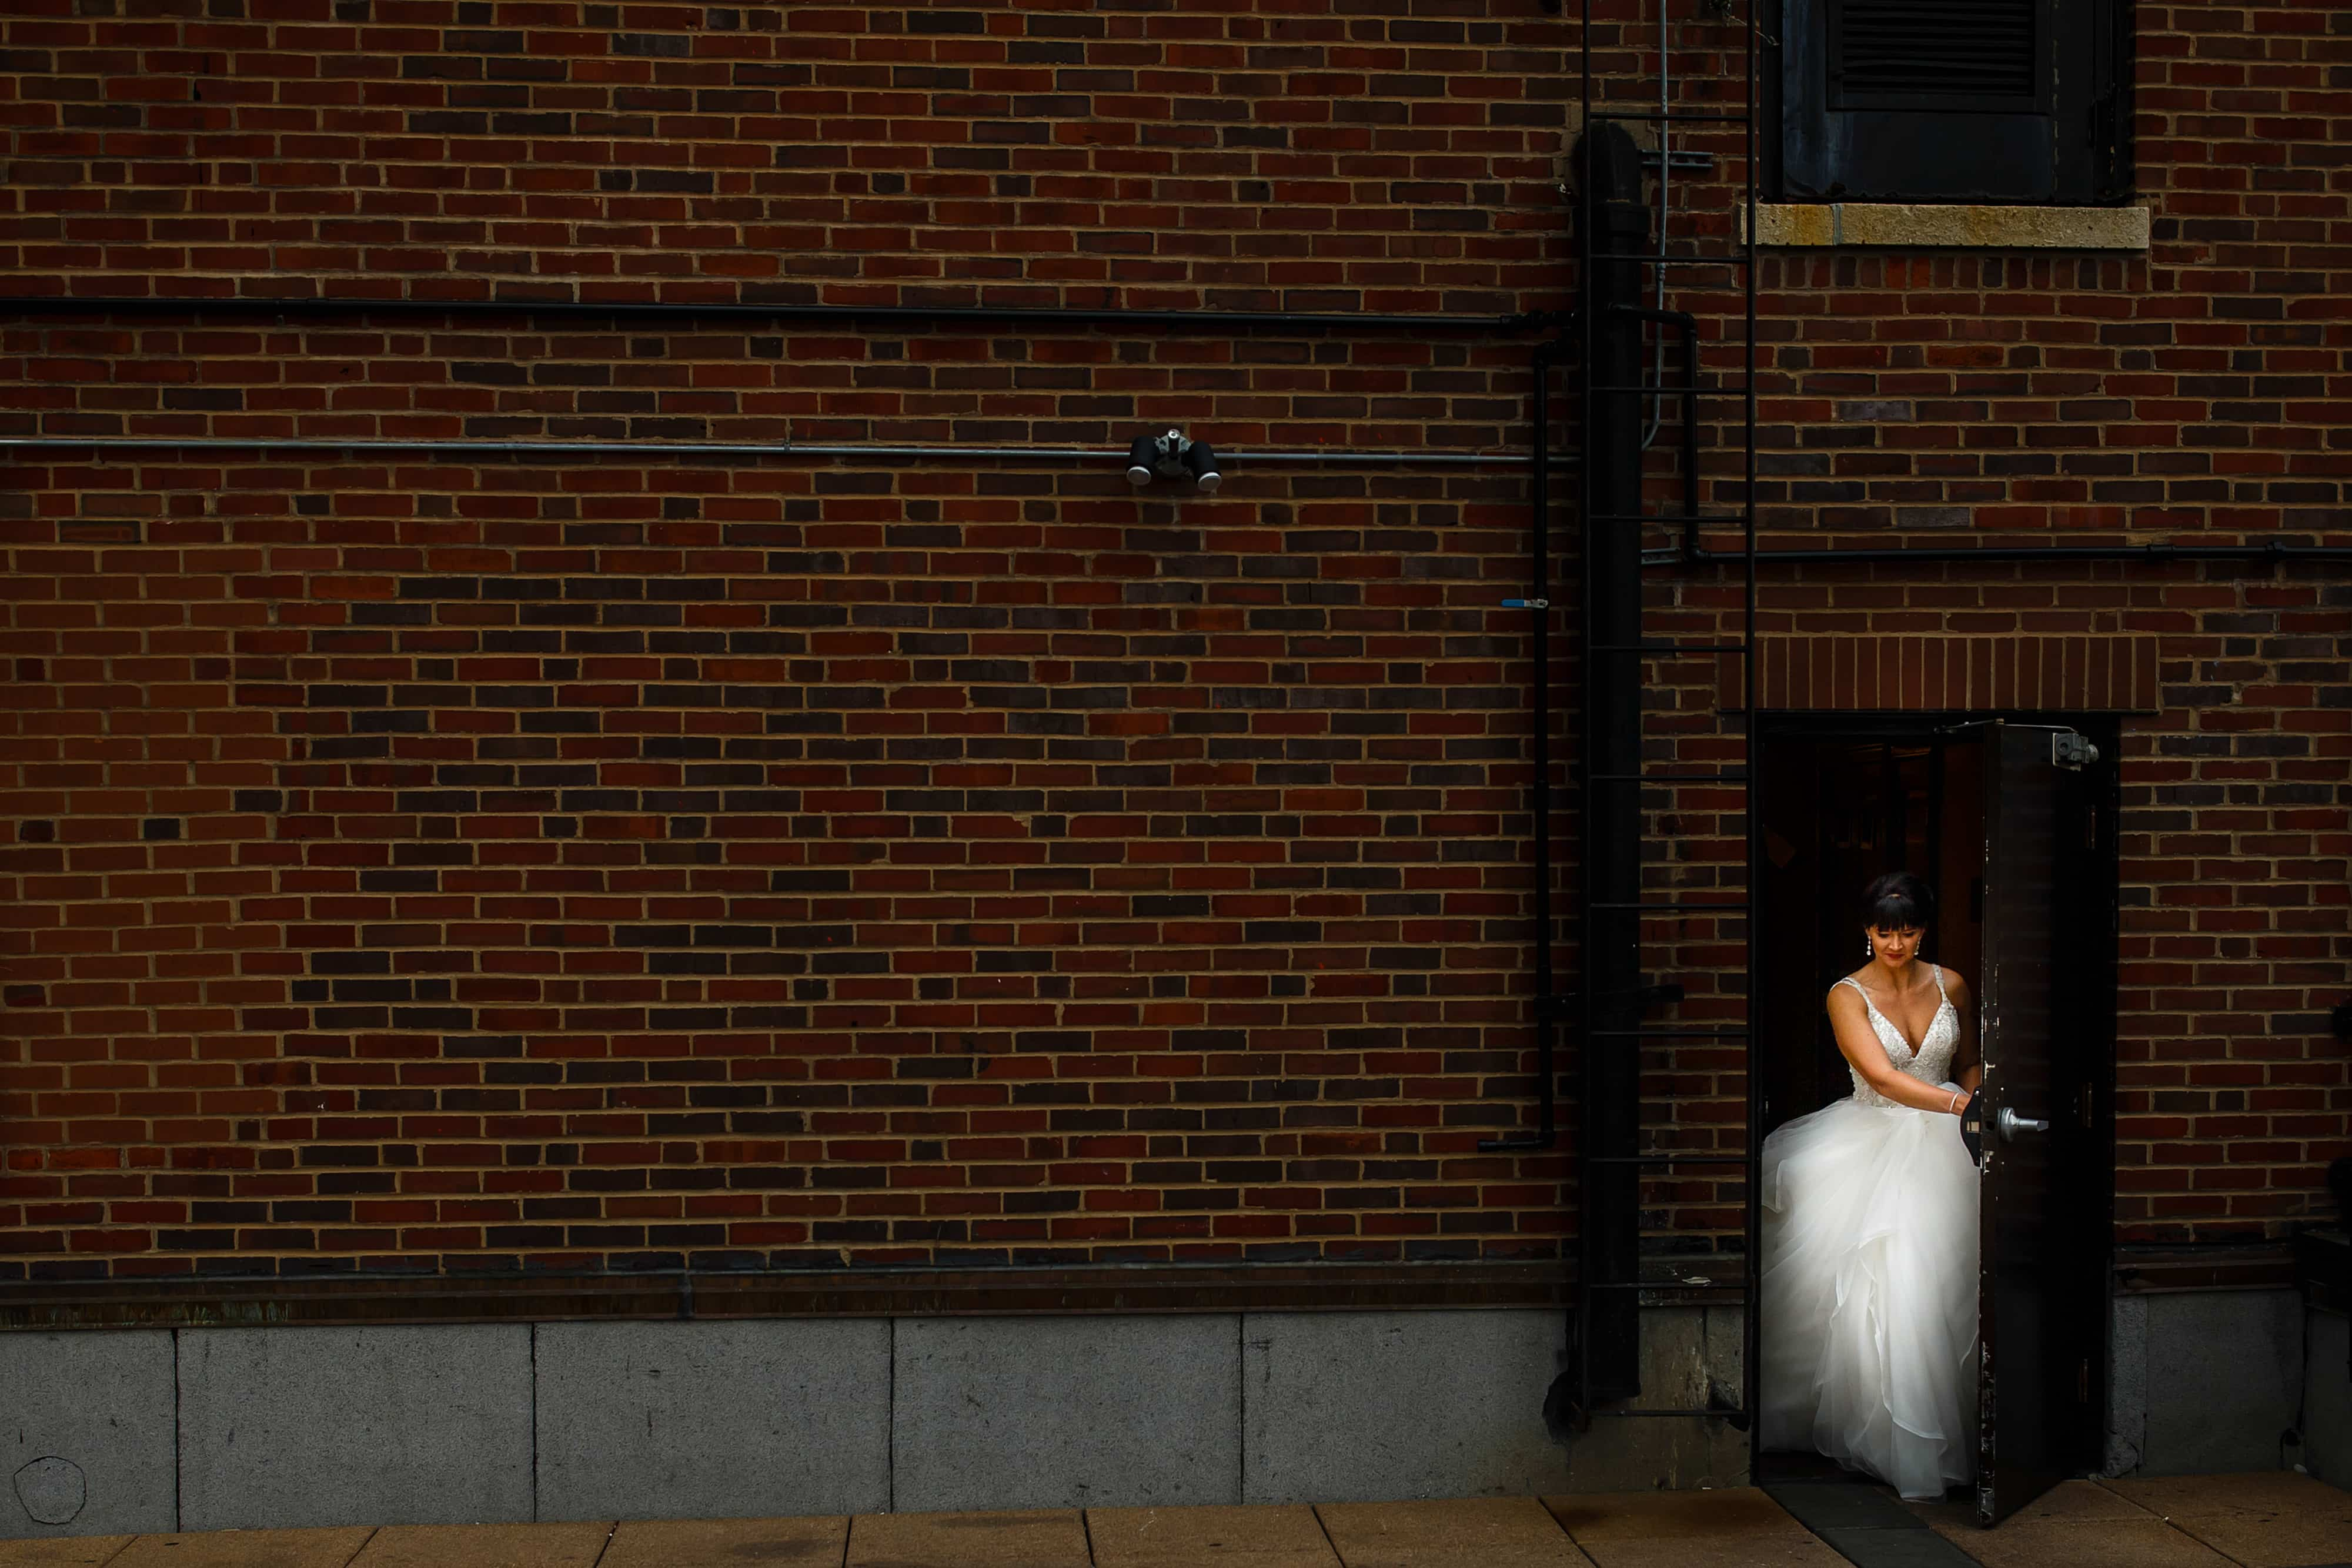 The bride walks out onto the rooftop in Chicago